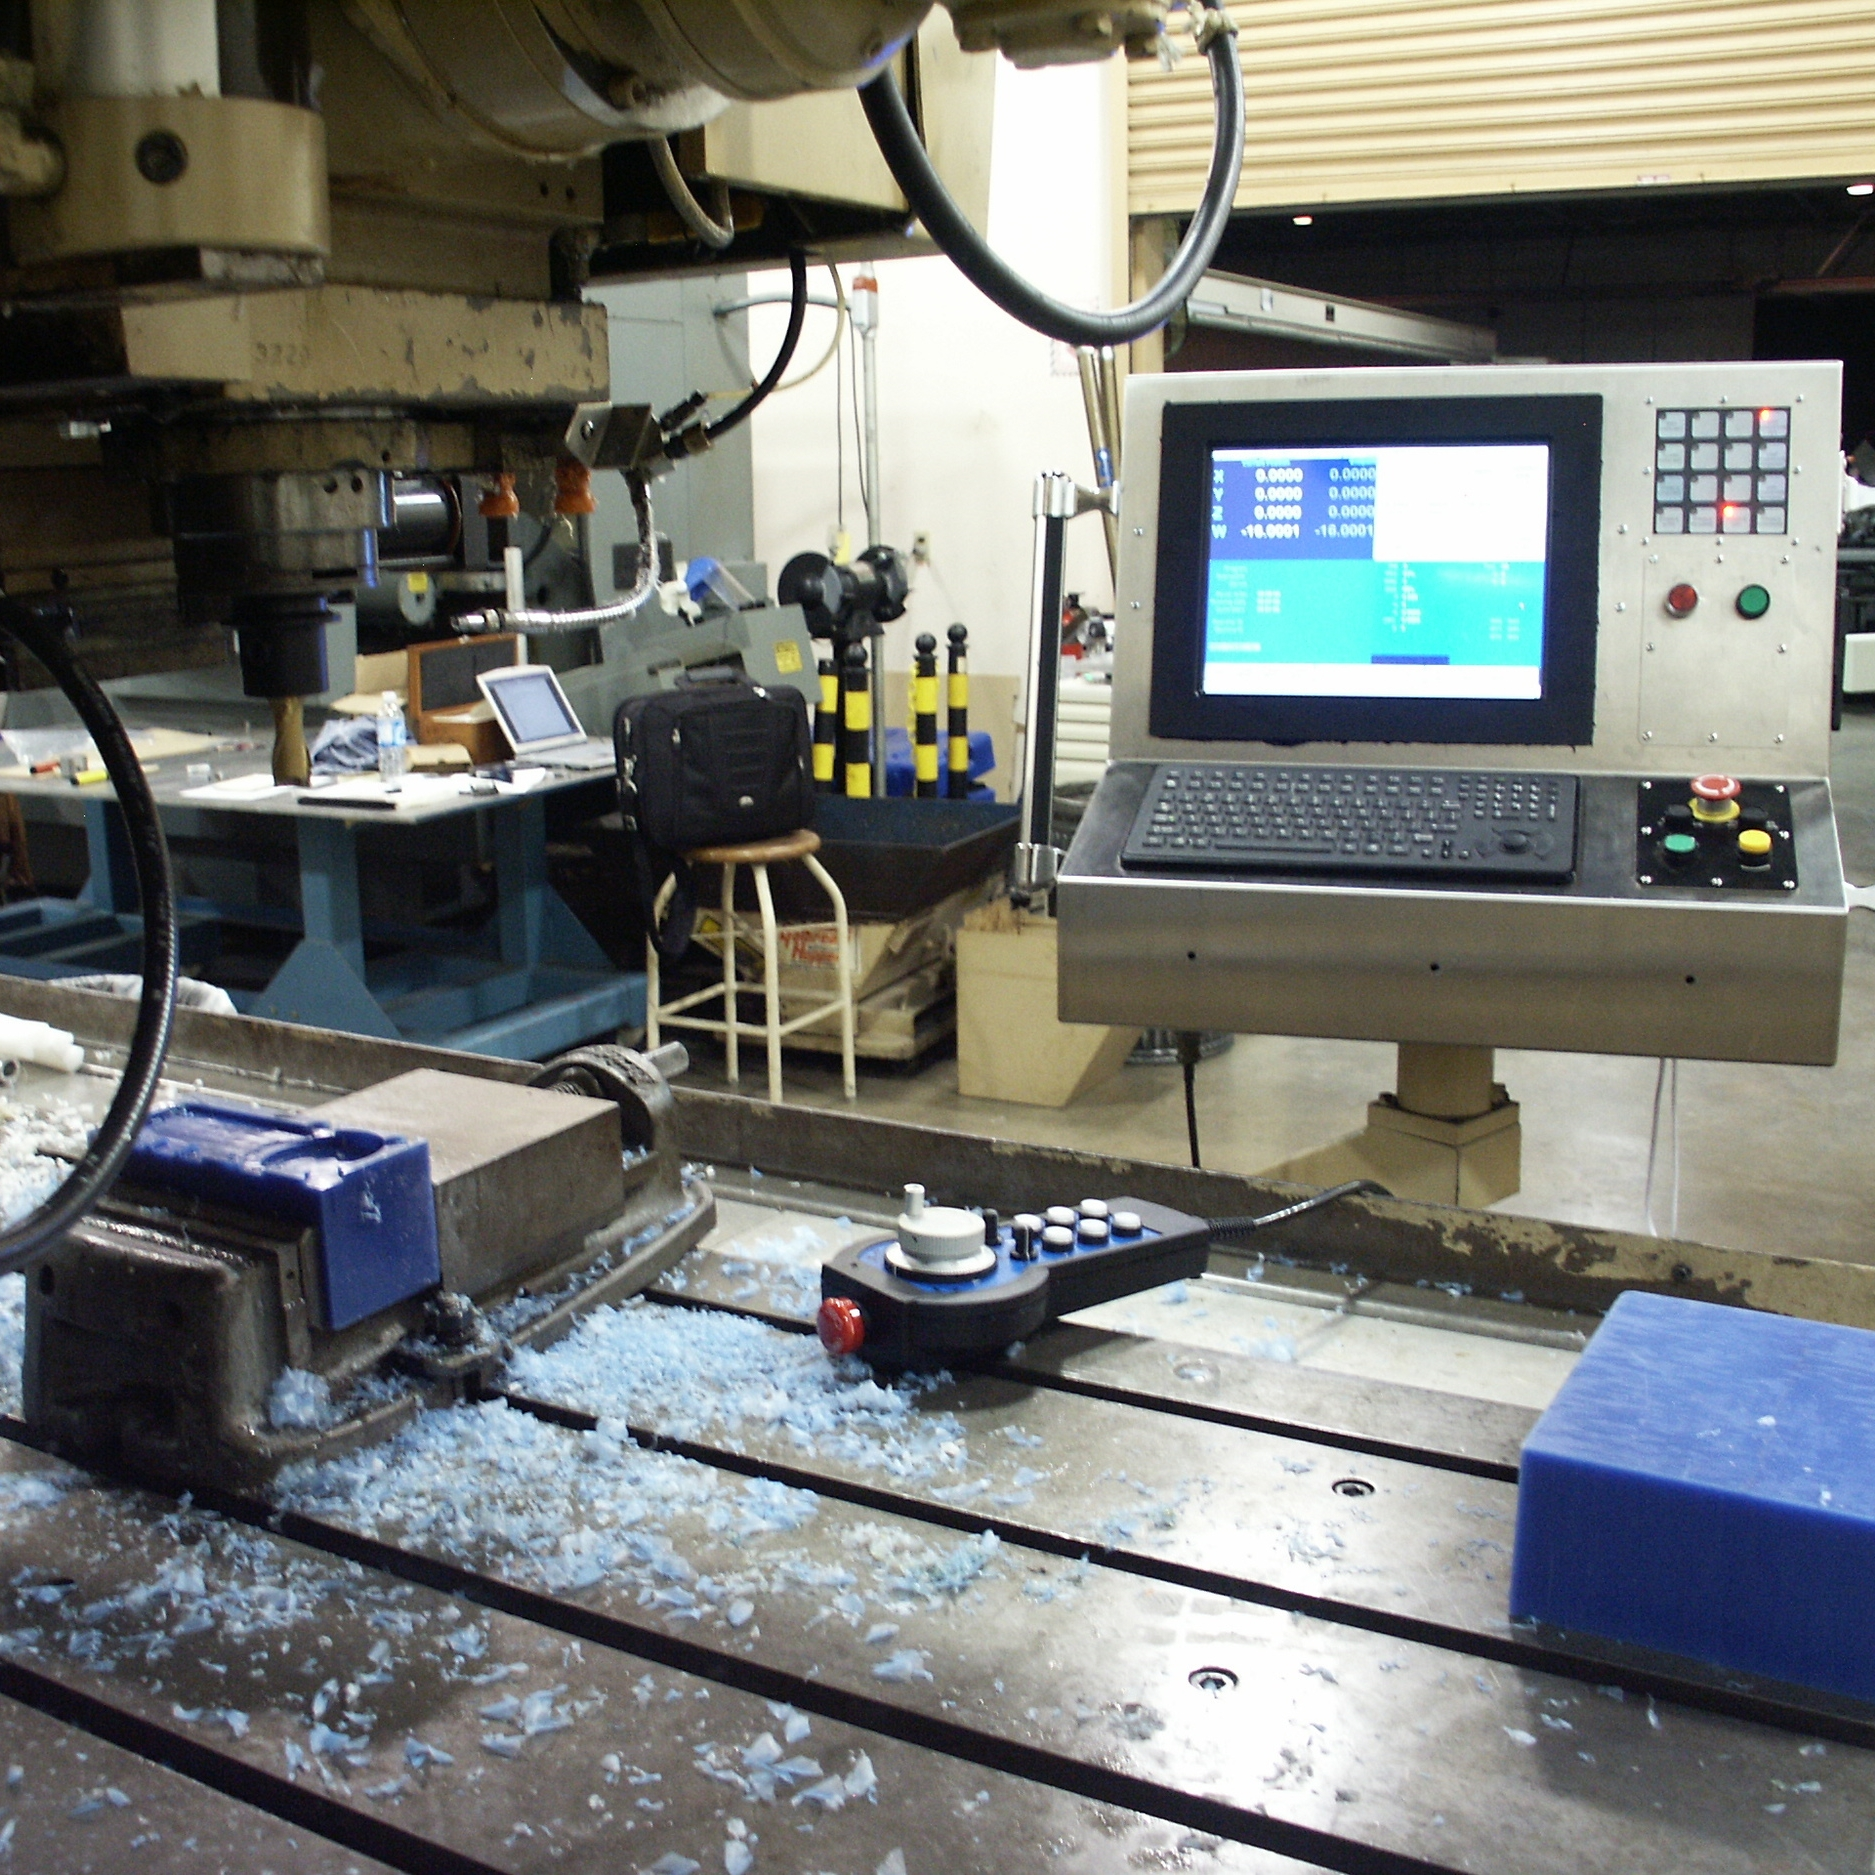 SIEB & MEYER CNC 9 CONTROL MILLING CENTER